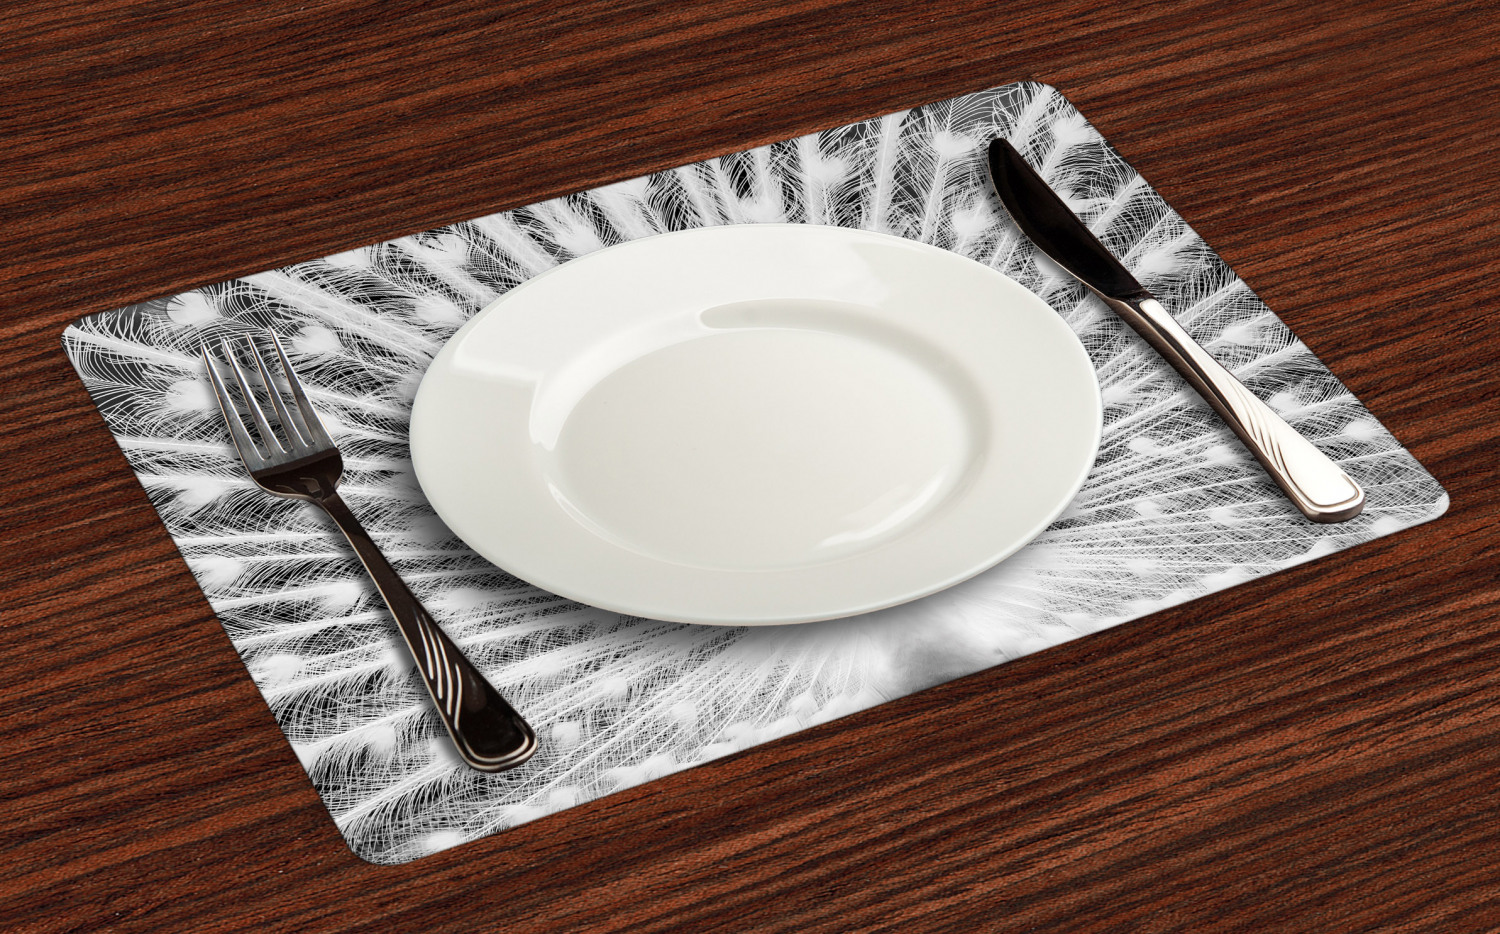 Ambesonne-Fabric-Place-Mats-Set-of-4-Placemats-for-Dining-Room-and-Kitchen-Table thumbnail 93